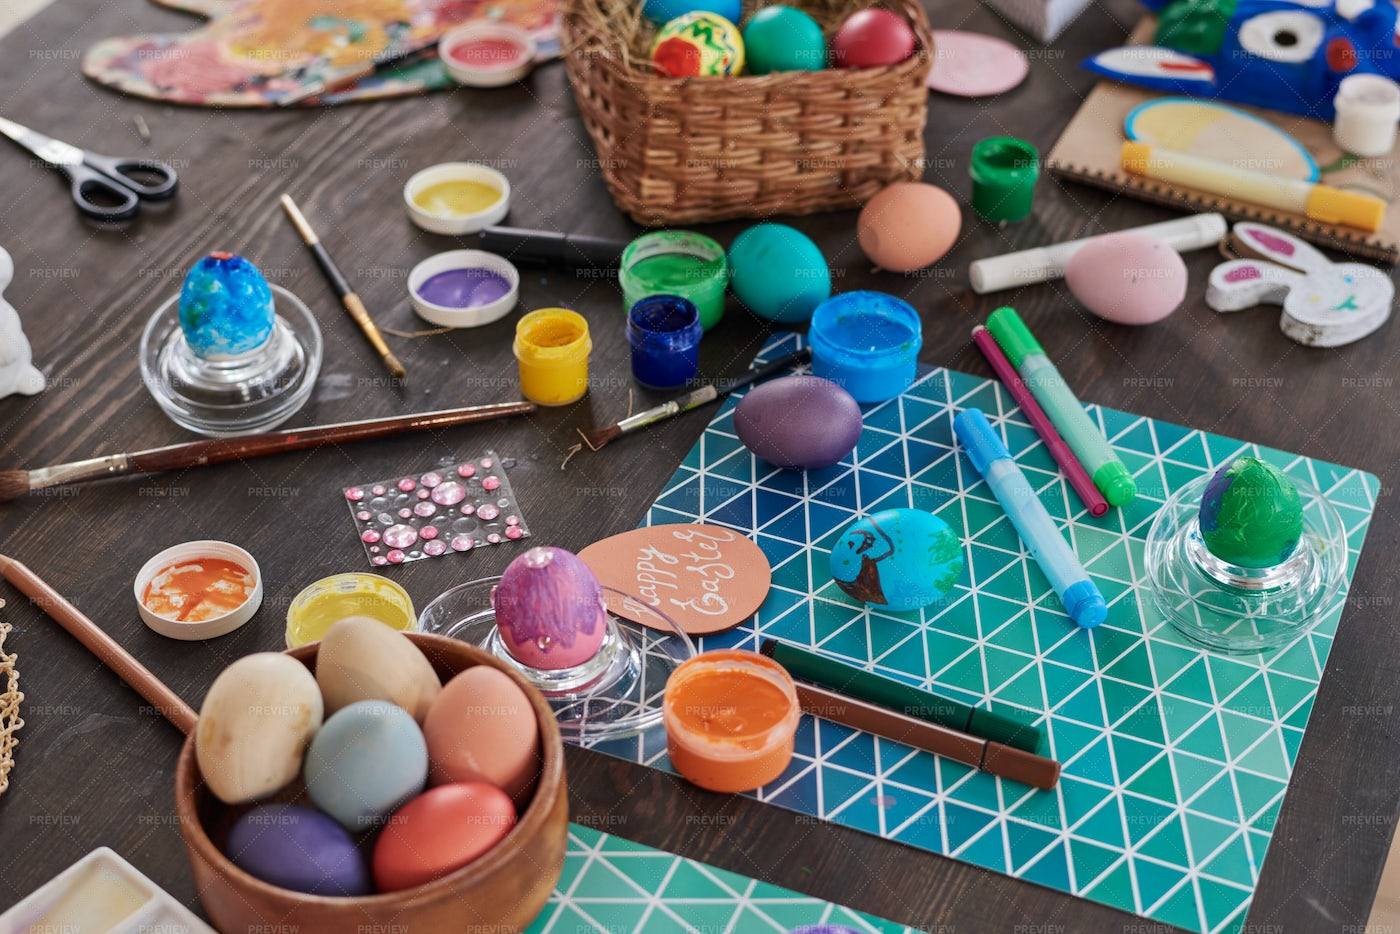 Decorating Eggs For Easter: Stock Photos